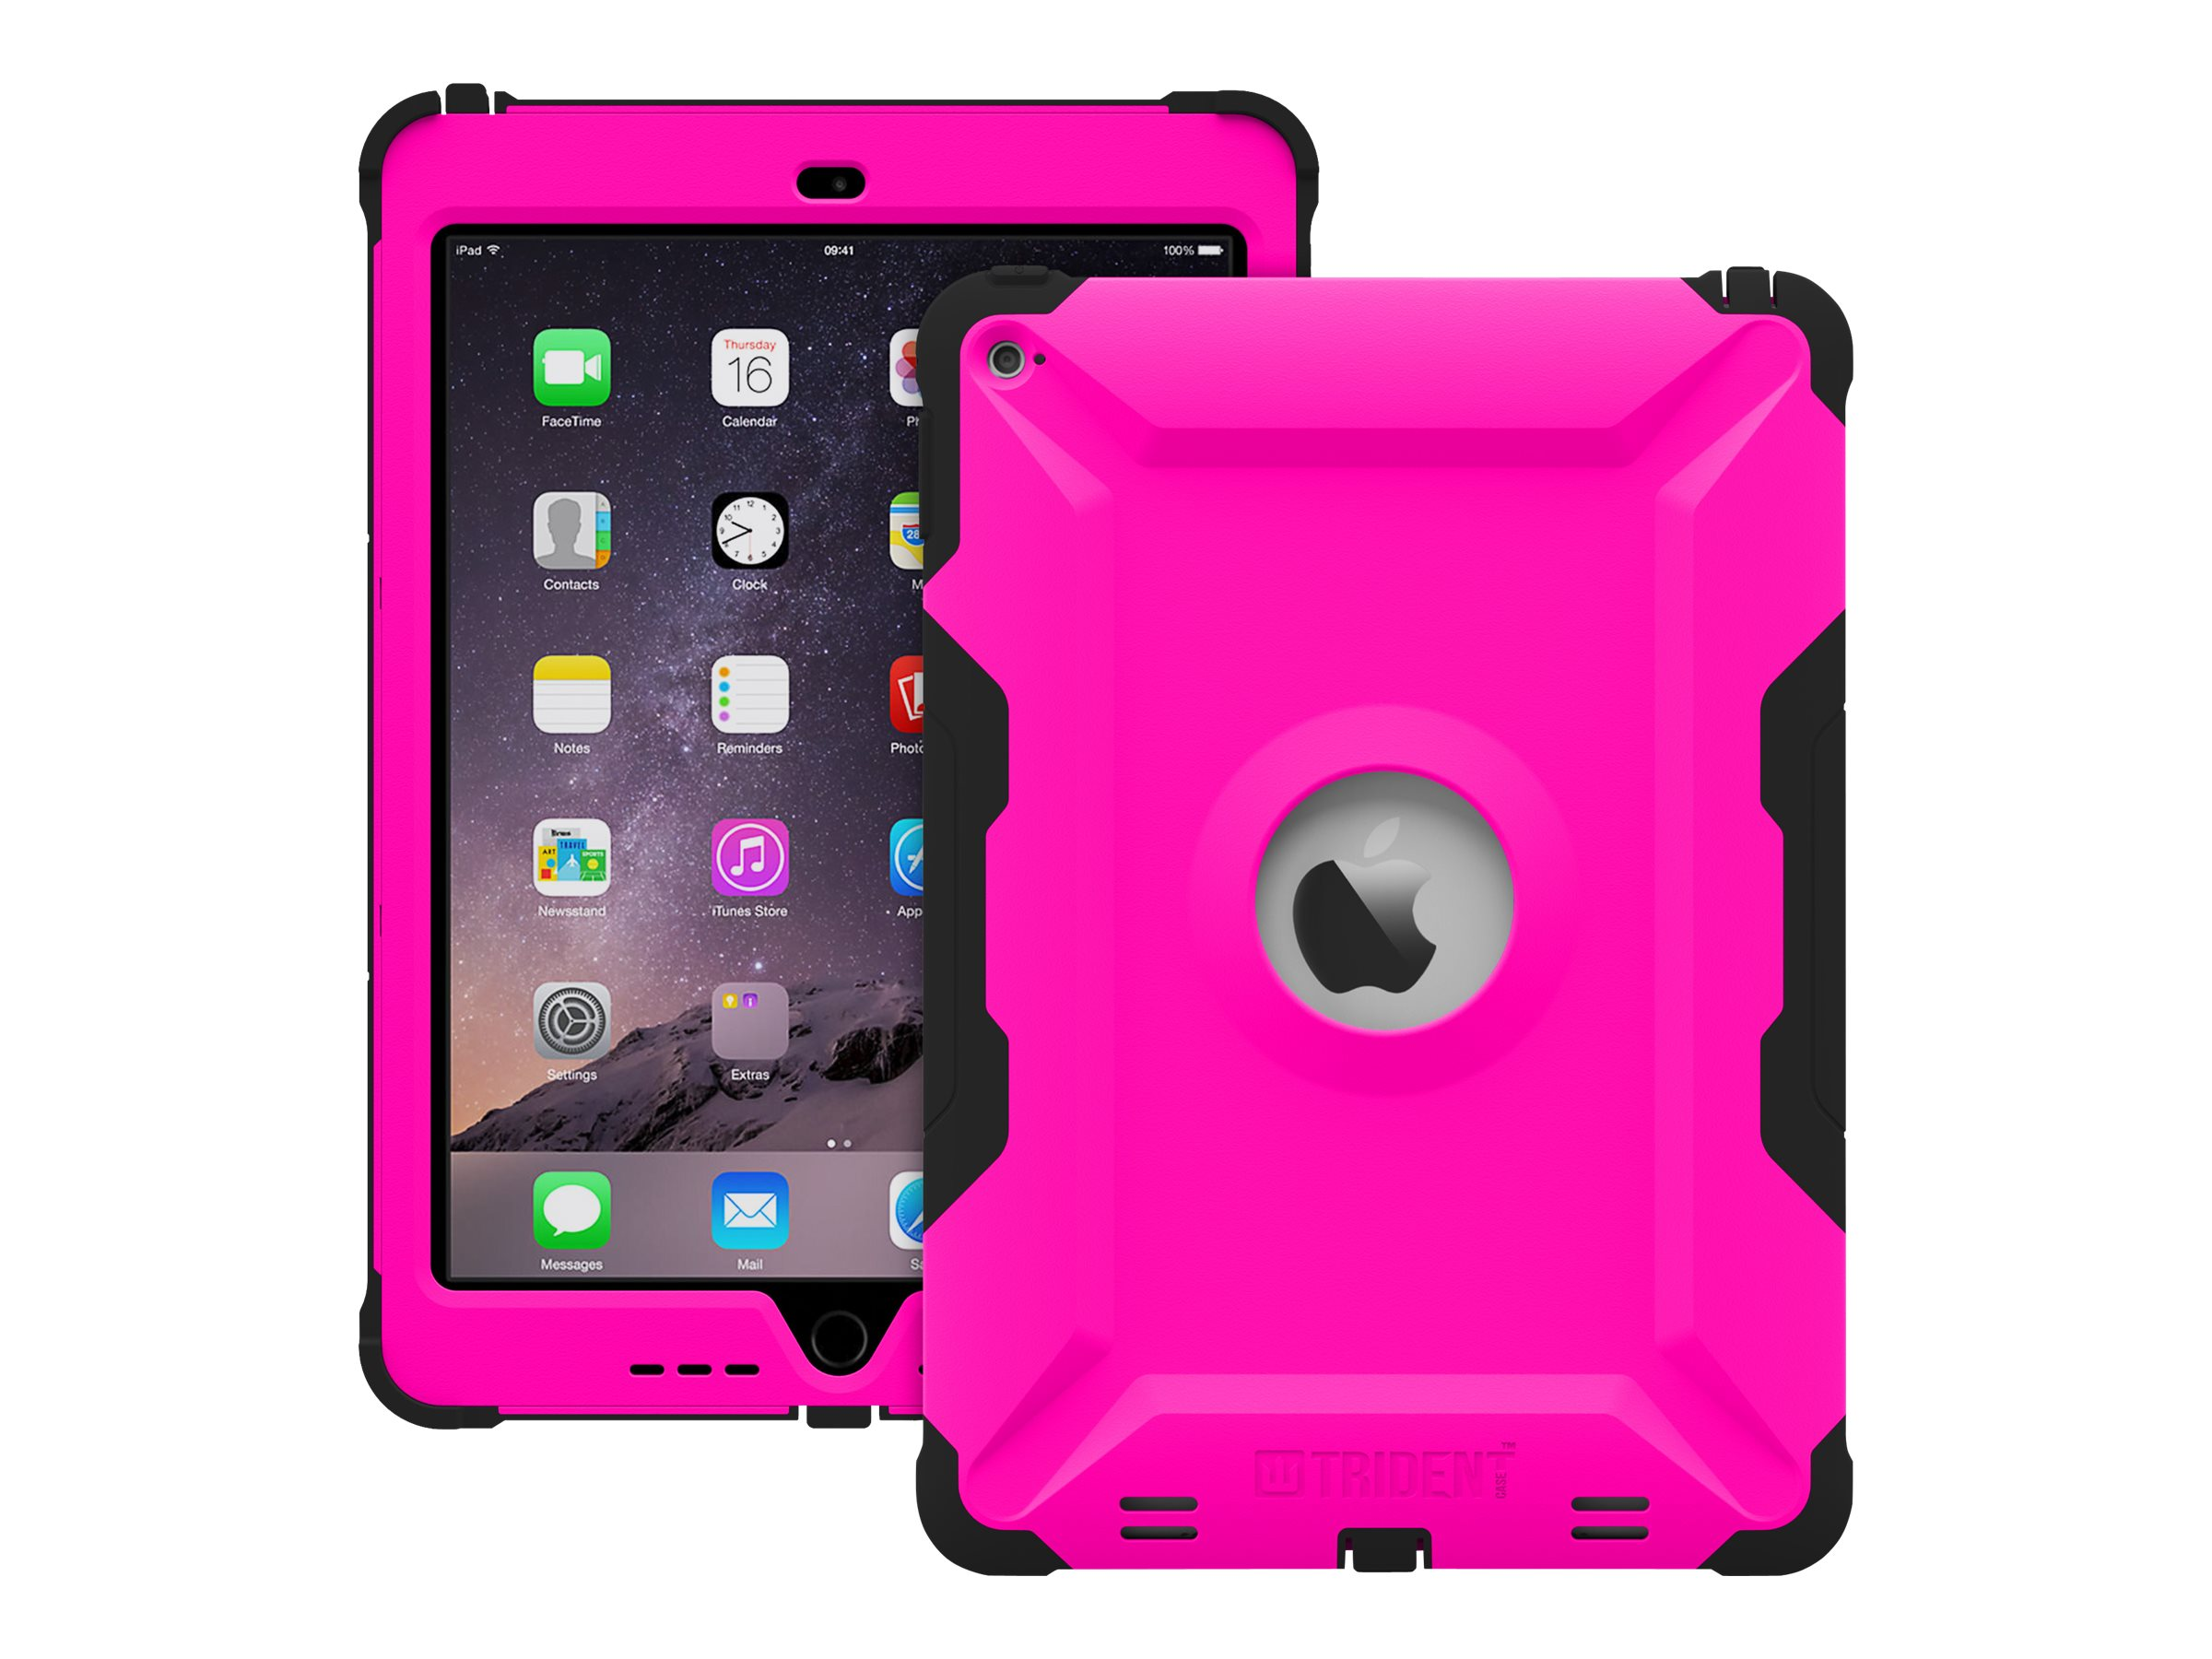 Trident Case 2015 Kraken AMS Case for iPad Air 2, Pink, KN-APIPA2-PK000, 18404871, Carrying Cases - Tablets & eReaders